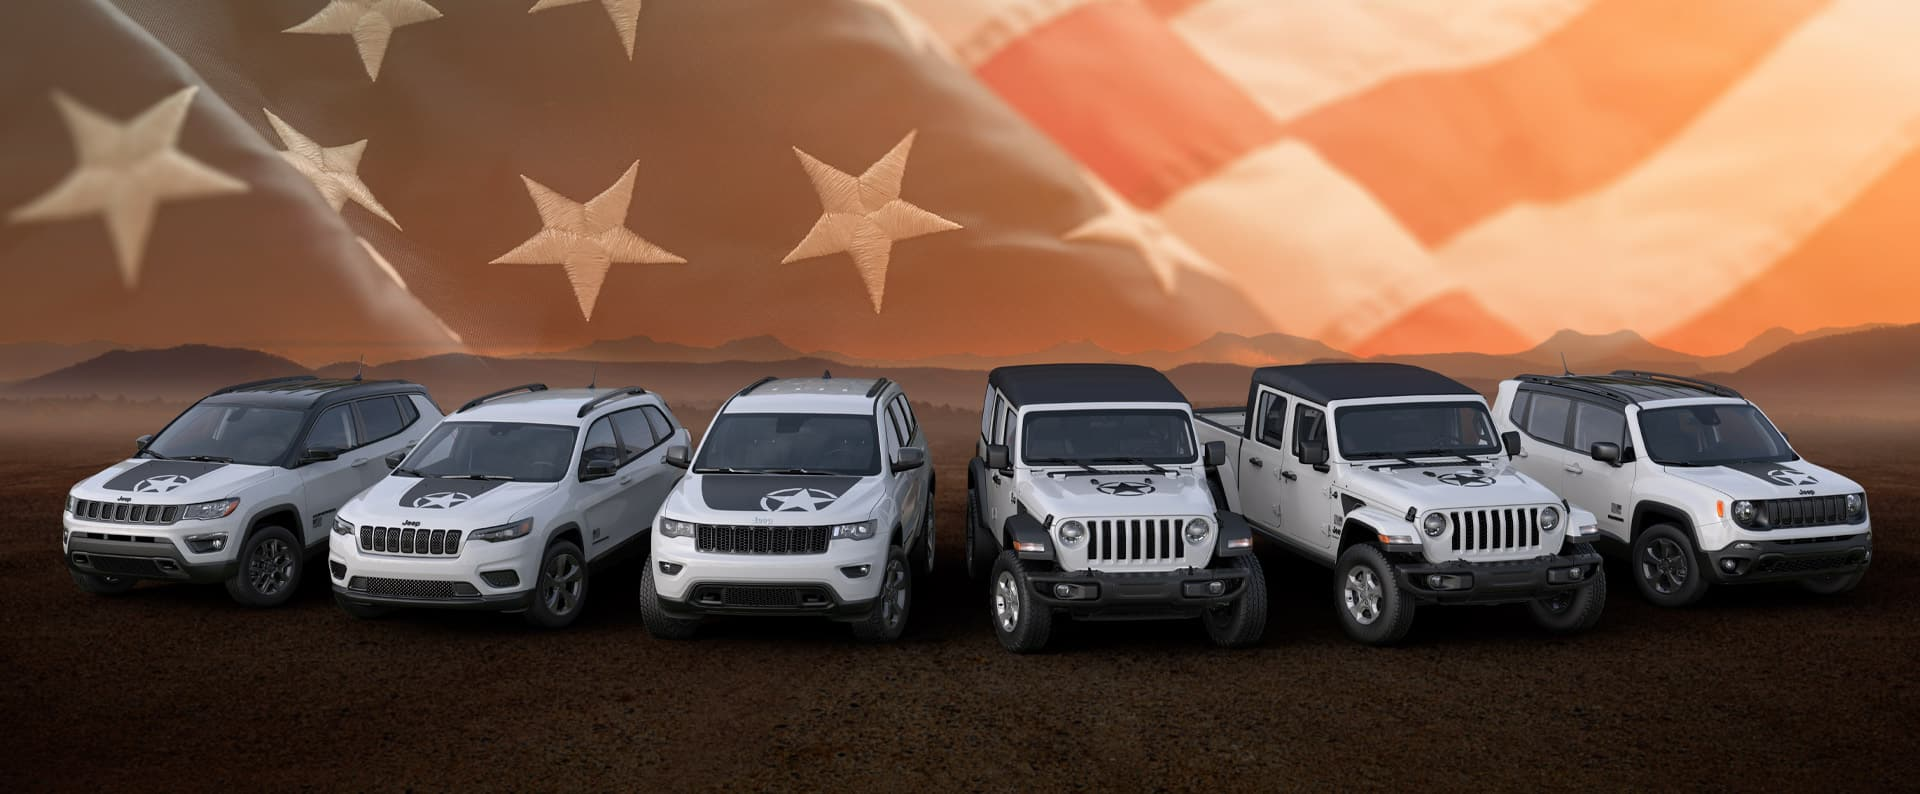 A lineup of the 2021 Jeep Brand Freedom Edition vehicles: Compass, Cherokee, Grand Cherokee, Wrangler, Gladiator and Renegade.